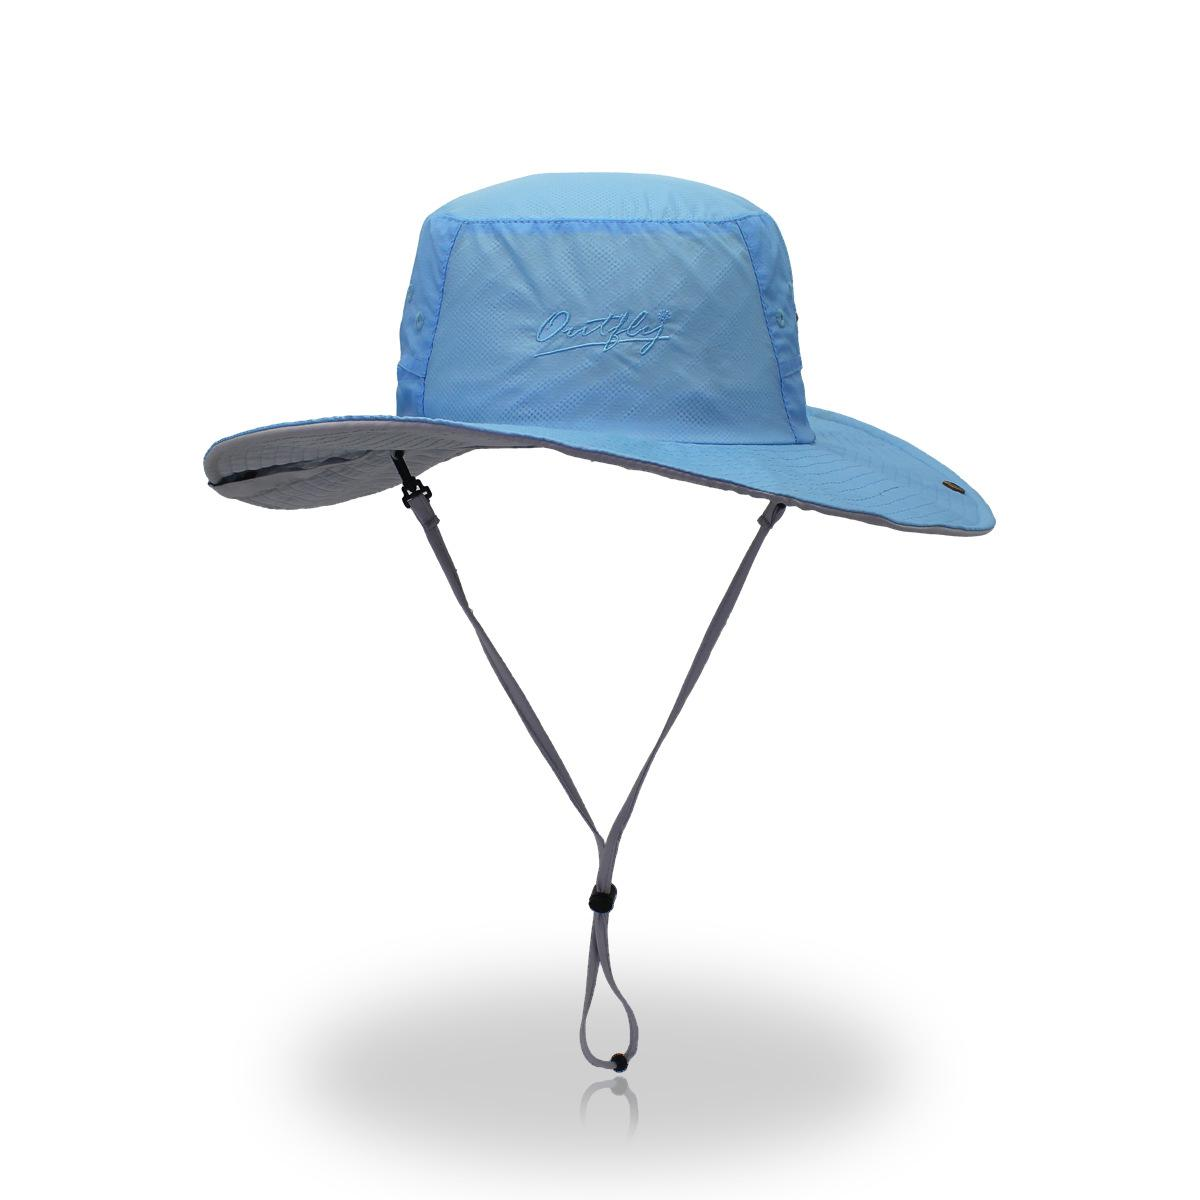 2017 Summer Hot Selling Fishing Hat Waterproof Breathable Cap Unisex Bob  Hiking Sombrero Outdoor Polyester Bucket Hat L004-in Hiking Caps from  Sports ... 73176fdd902